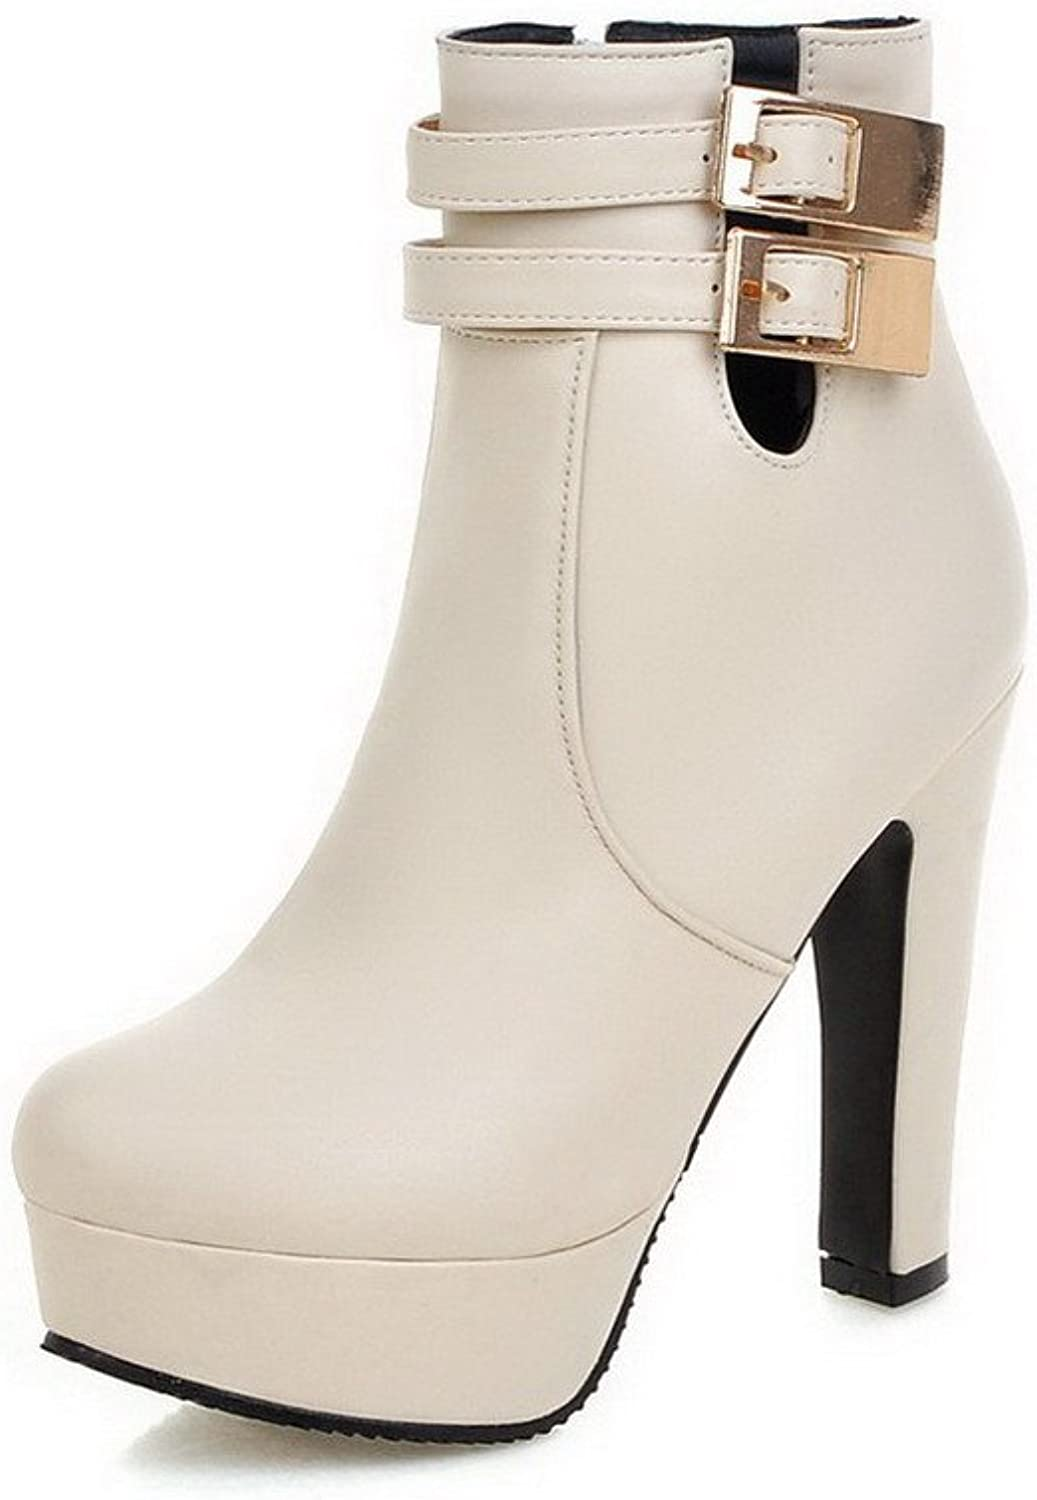 AllhqFashion Women's PU Low-top Solid Chains High-Heels Boots